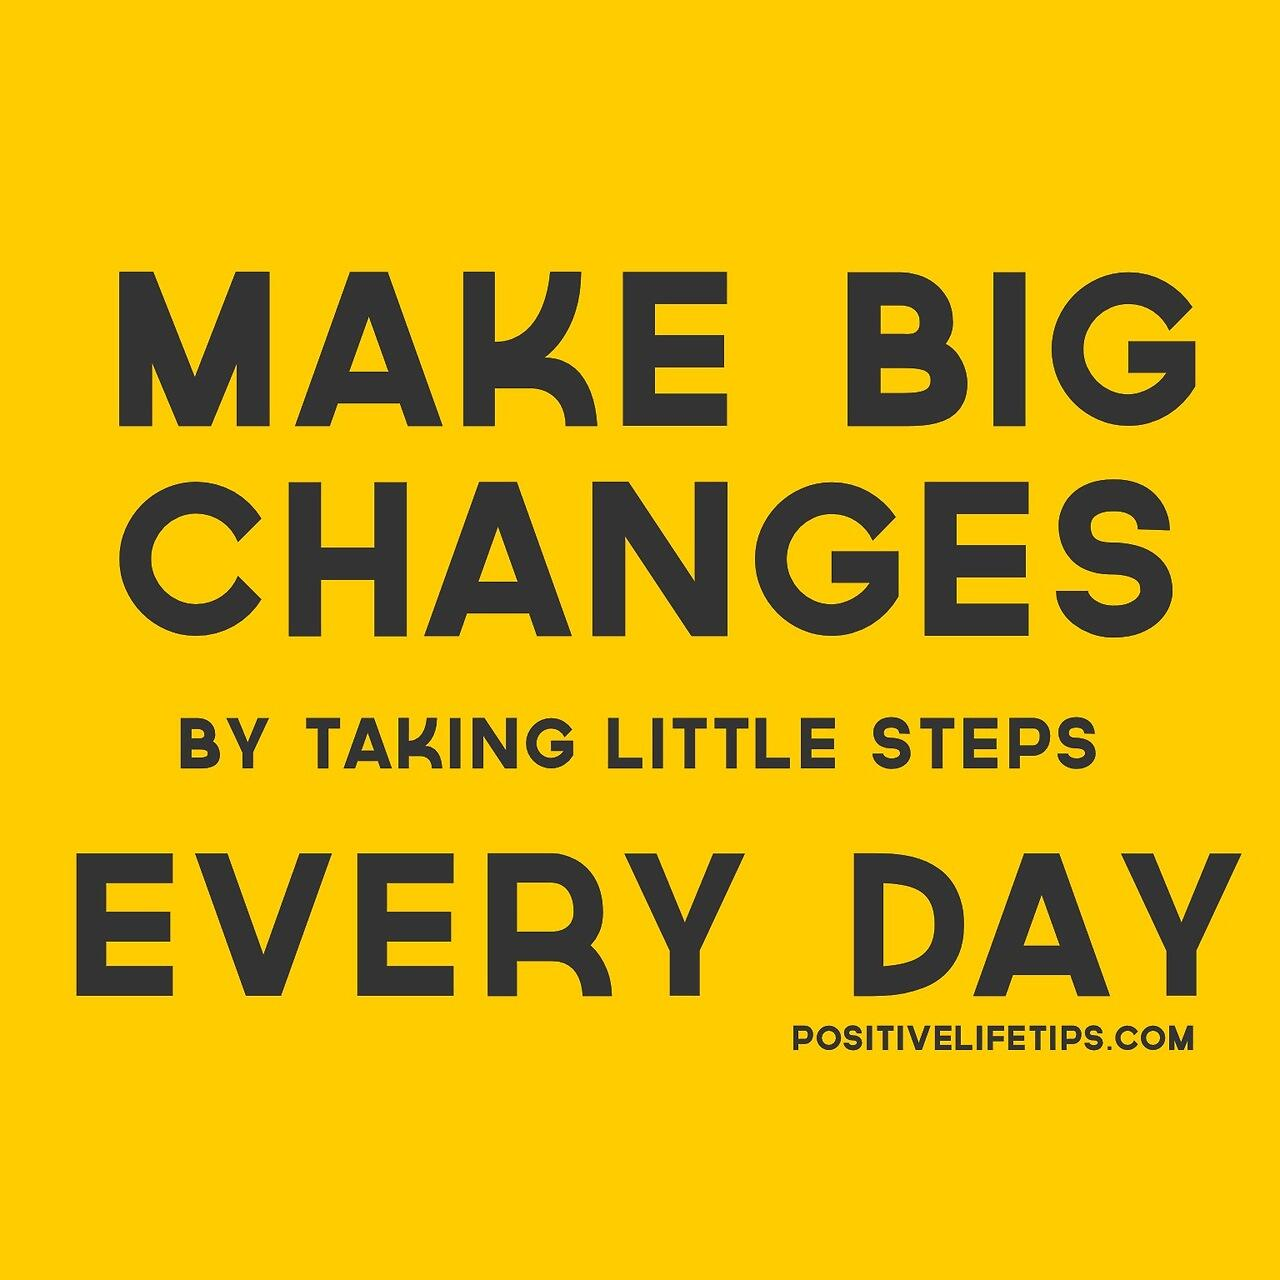 """Wondering how to """"make big changes?"""" @PosLifeTips says it's by """"taking little steps every day."""" http://t.co/vIMkKKTCuB"""